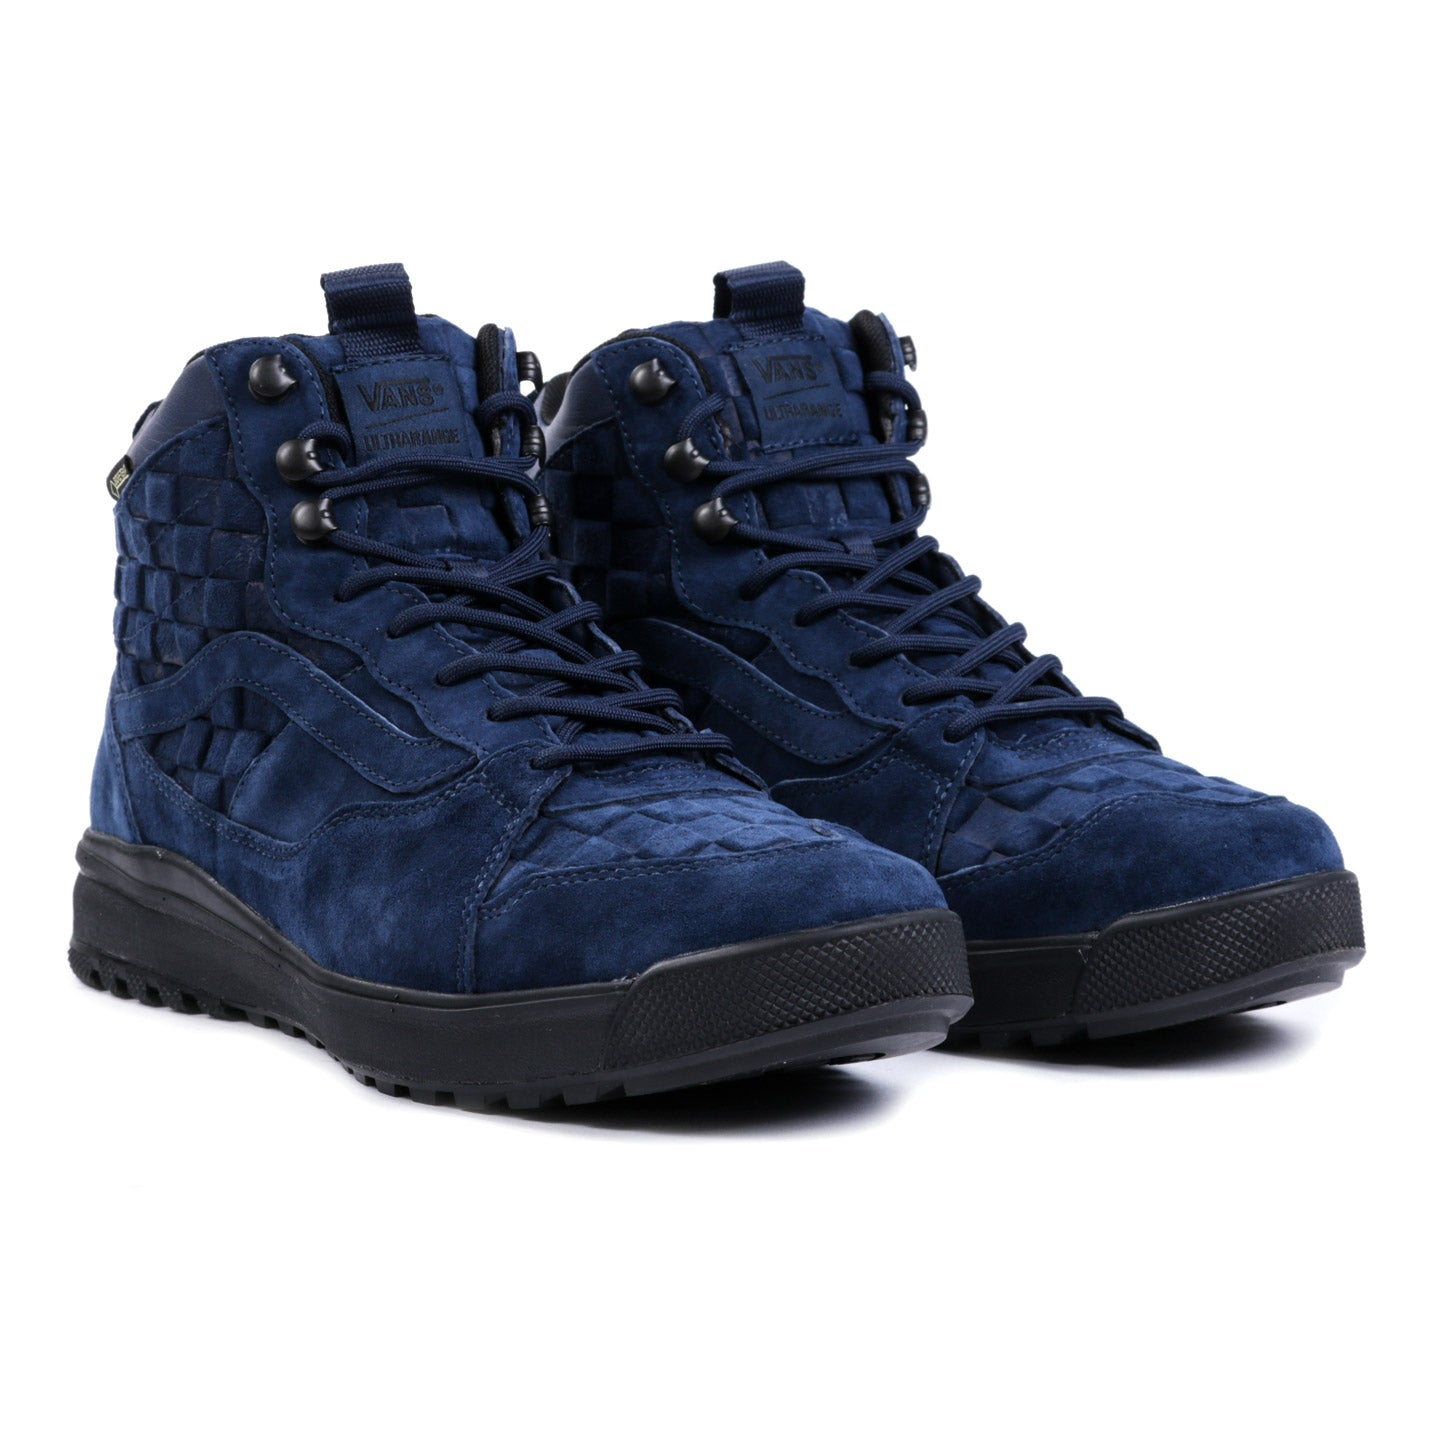 VAULT BY VANS ULTRARANGE HI GORE-TEX MTE CHECKERBOARD DRESS BLUES